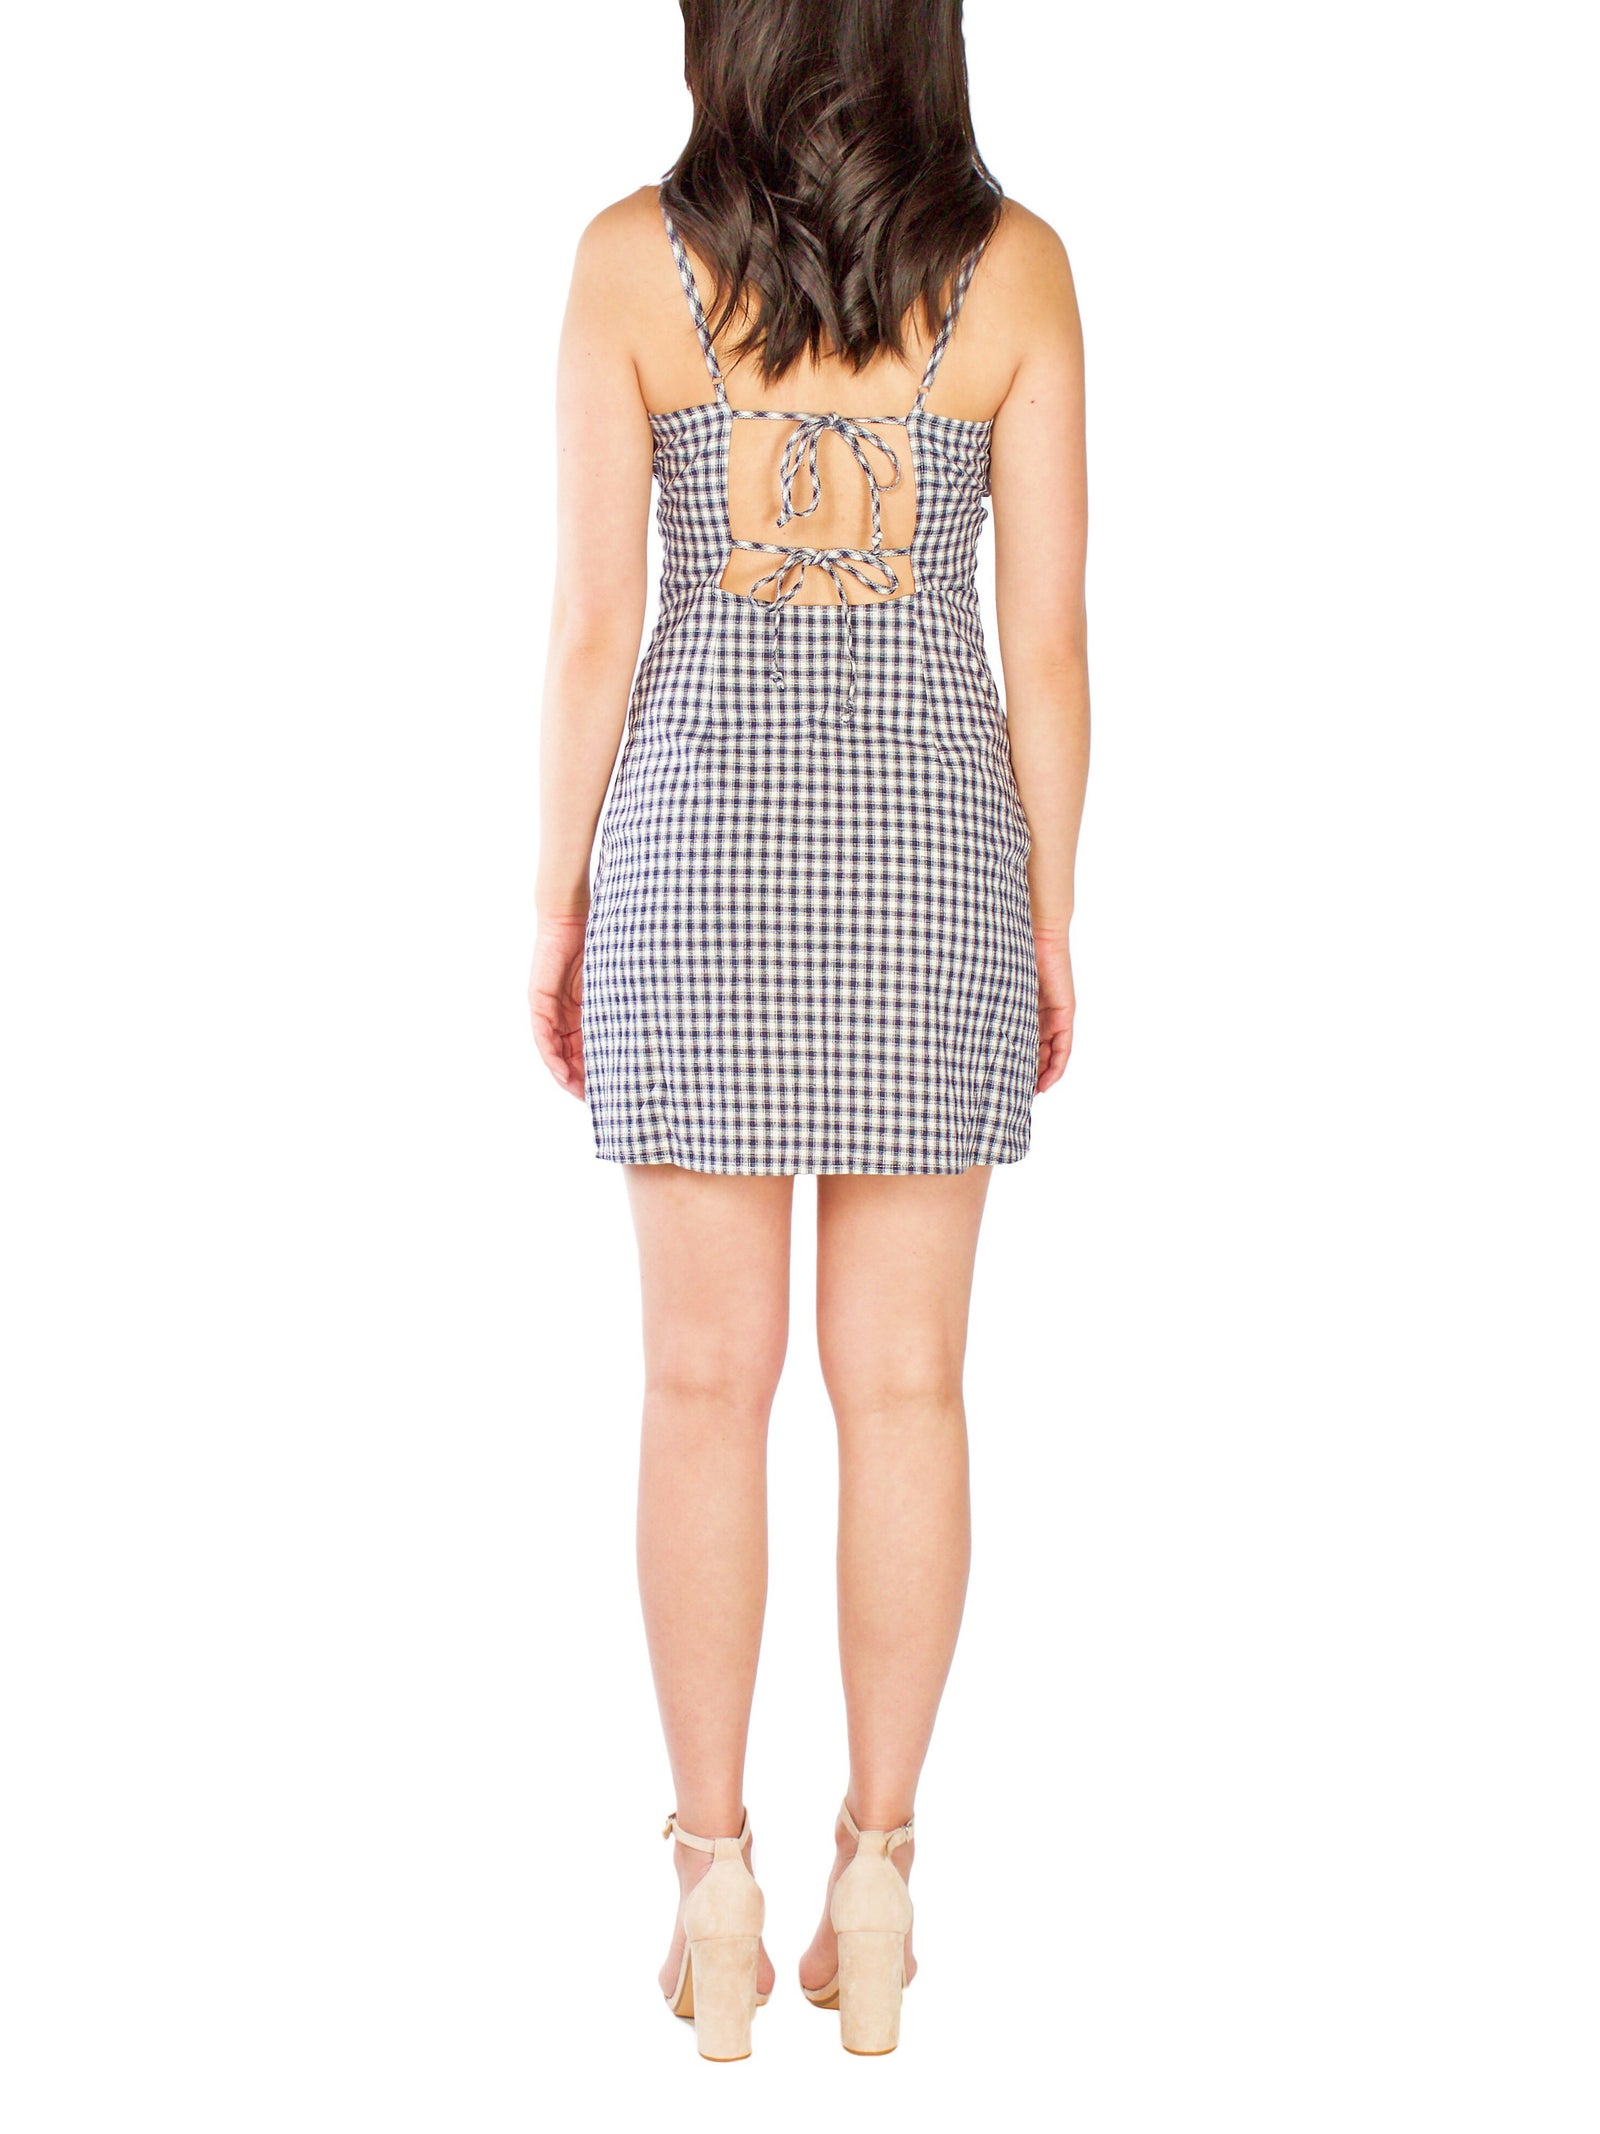 JENN Navy Checkered Mini Dress - PRADEGAL